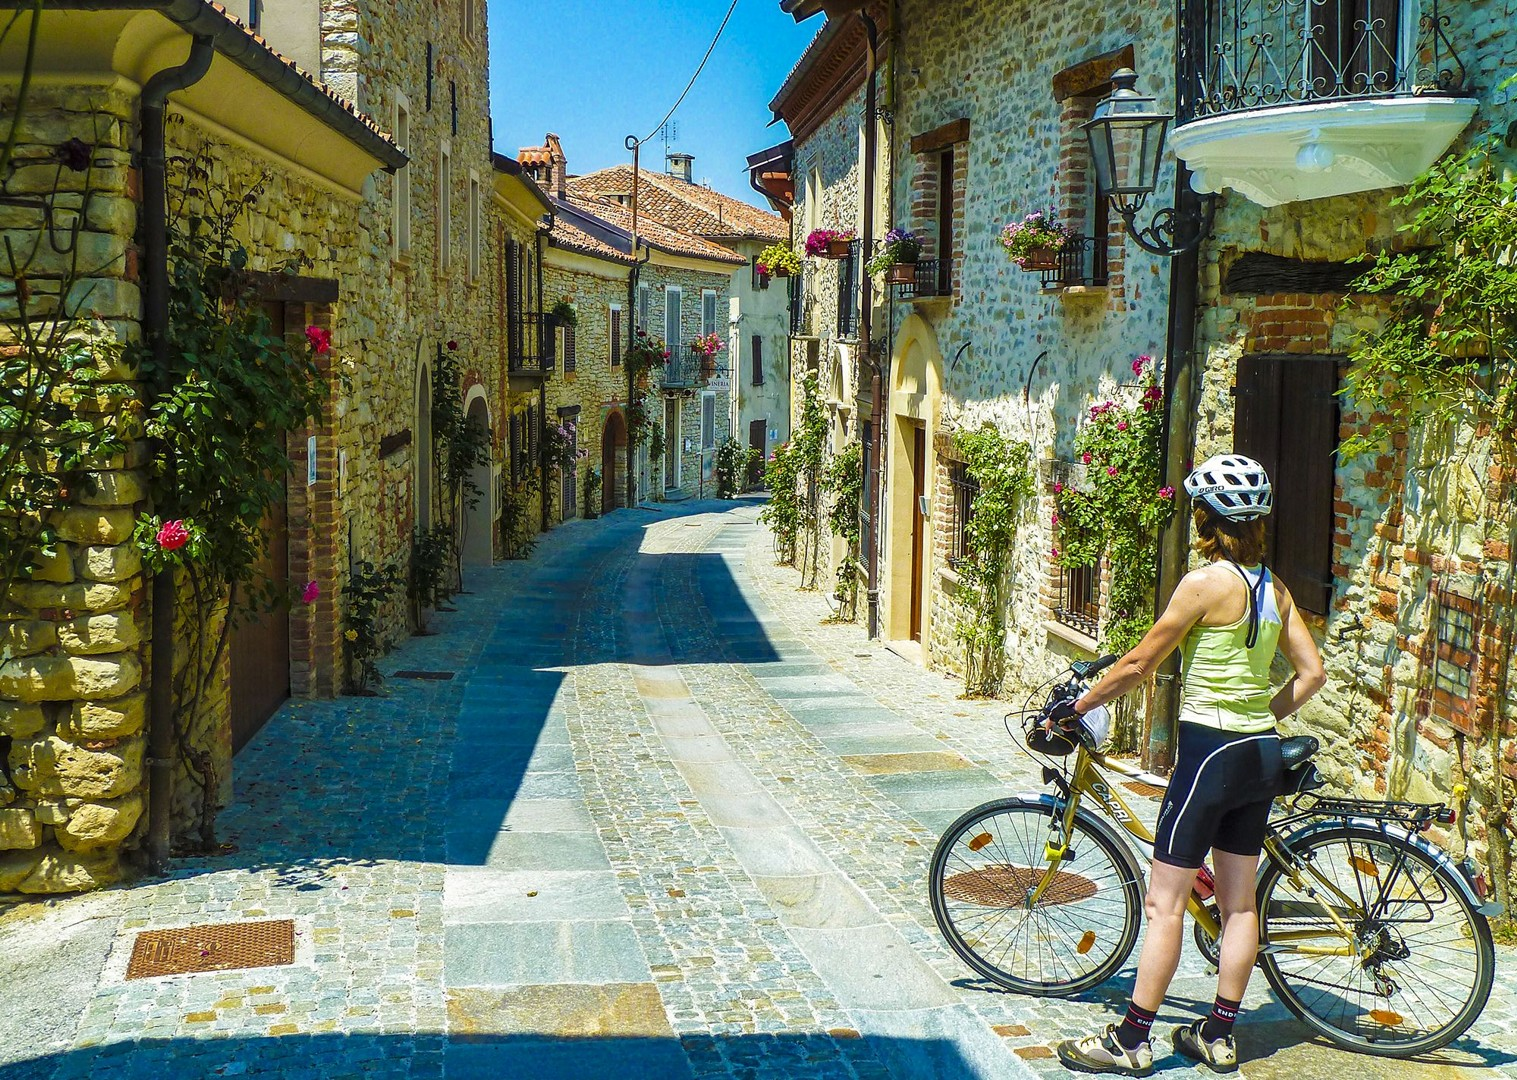 explore-culture-traditional-italy-piemonte-cycling-holiday-self-guided.jpg - Italy - Piemonte - Vineyards and Views - Self-Guided Leisure Cycling Holiday - Leisure Cycling